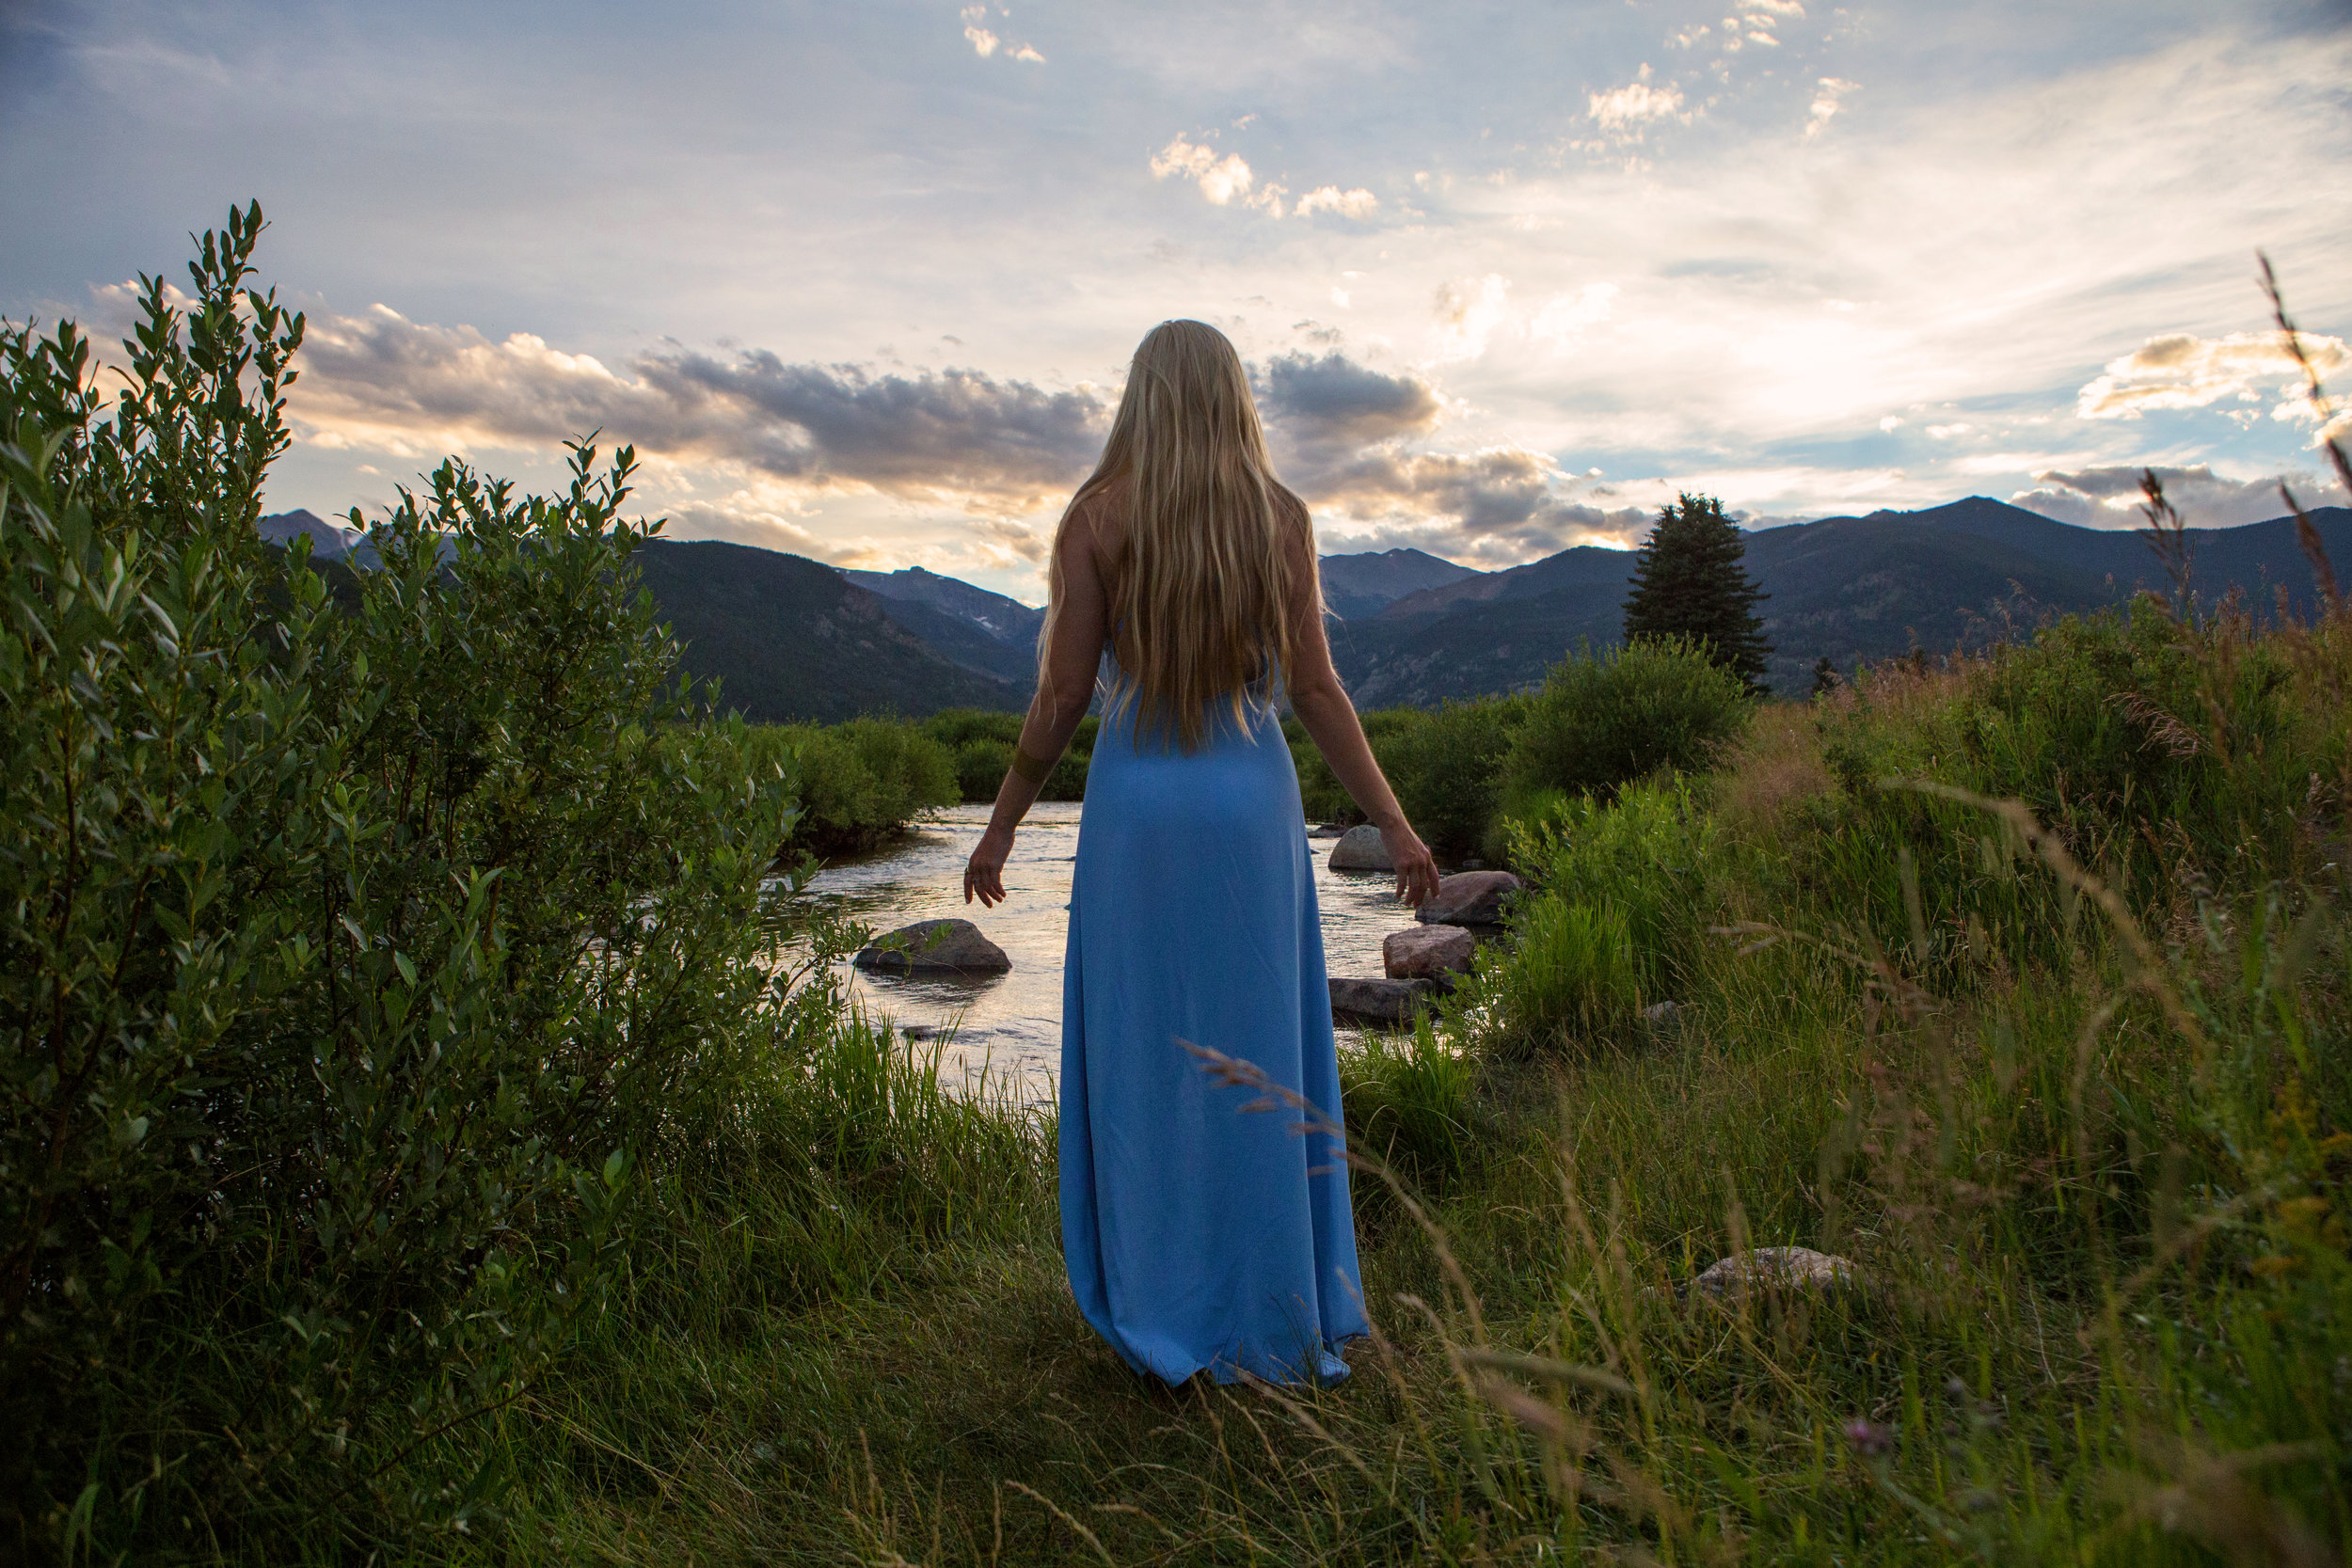 AstroBandit_Rocky_Mountain_National_Park_Sunset_BlueDress_7.jpg